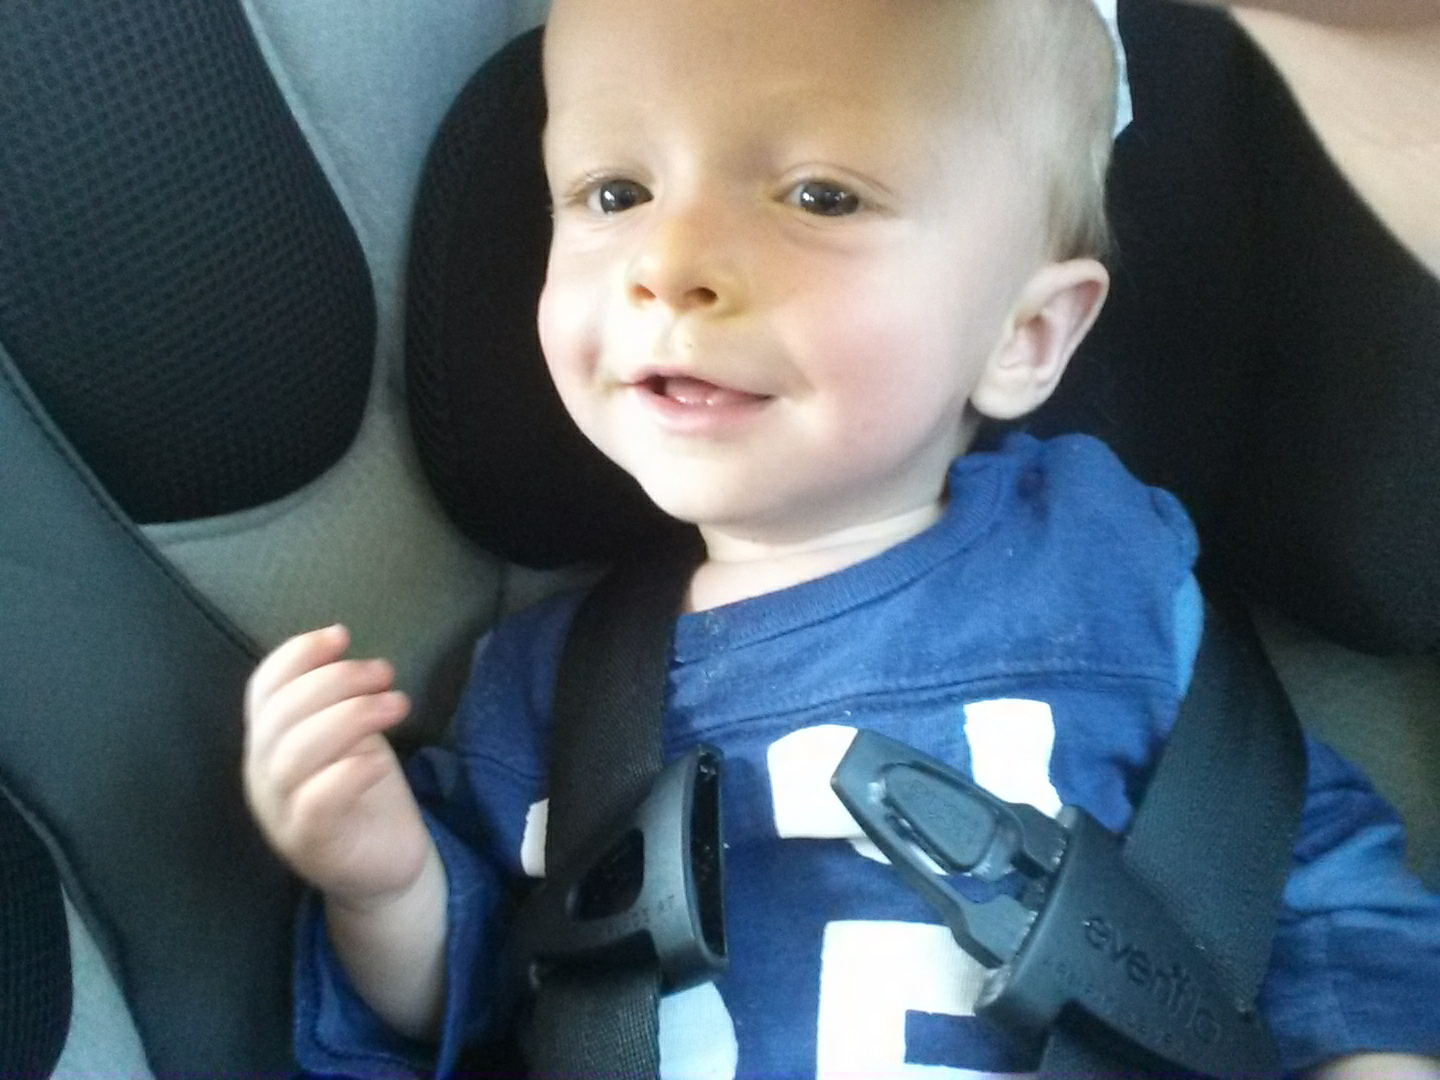 Reagan being a ham after he learned how to unclip his carseat strap